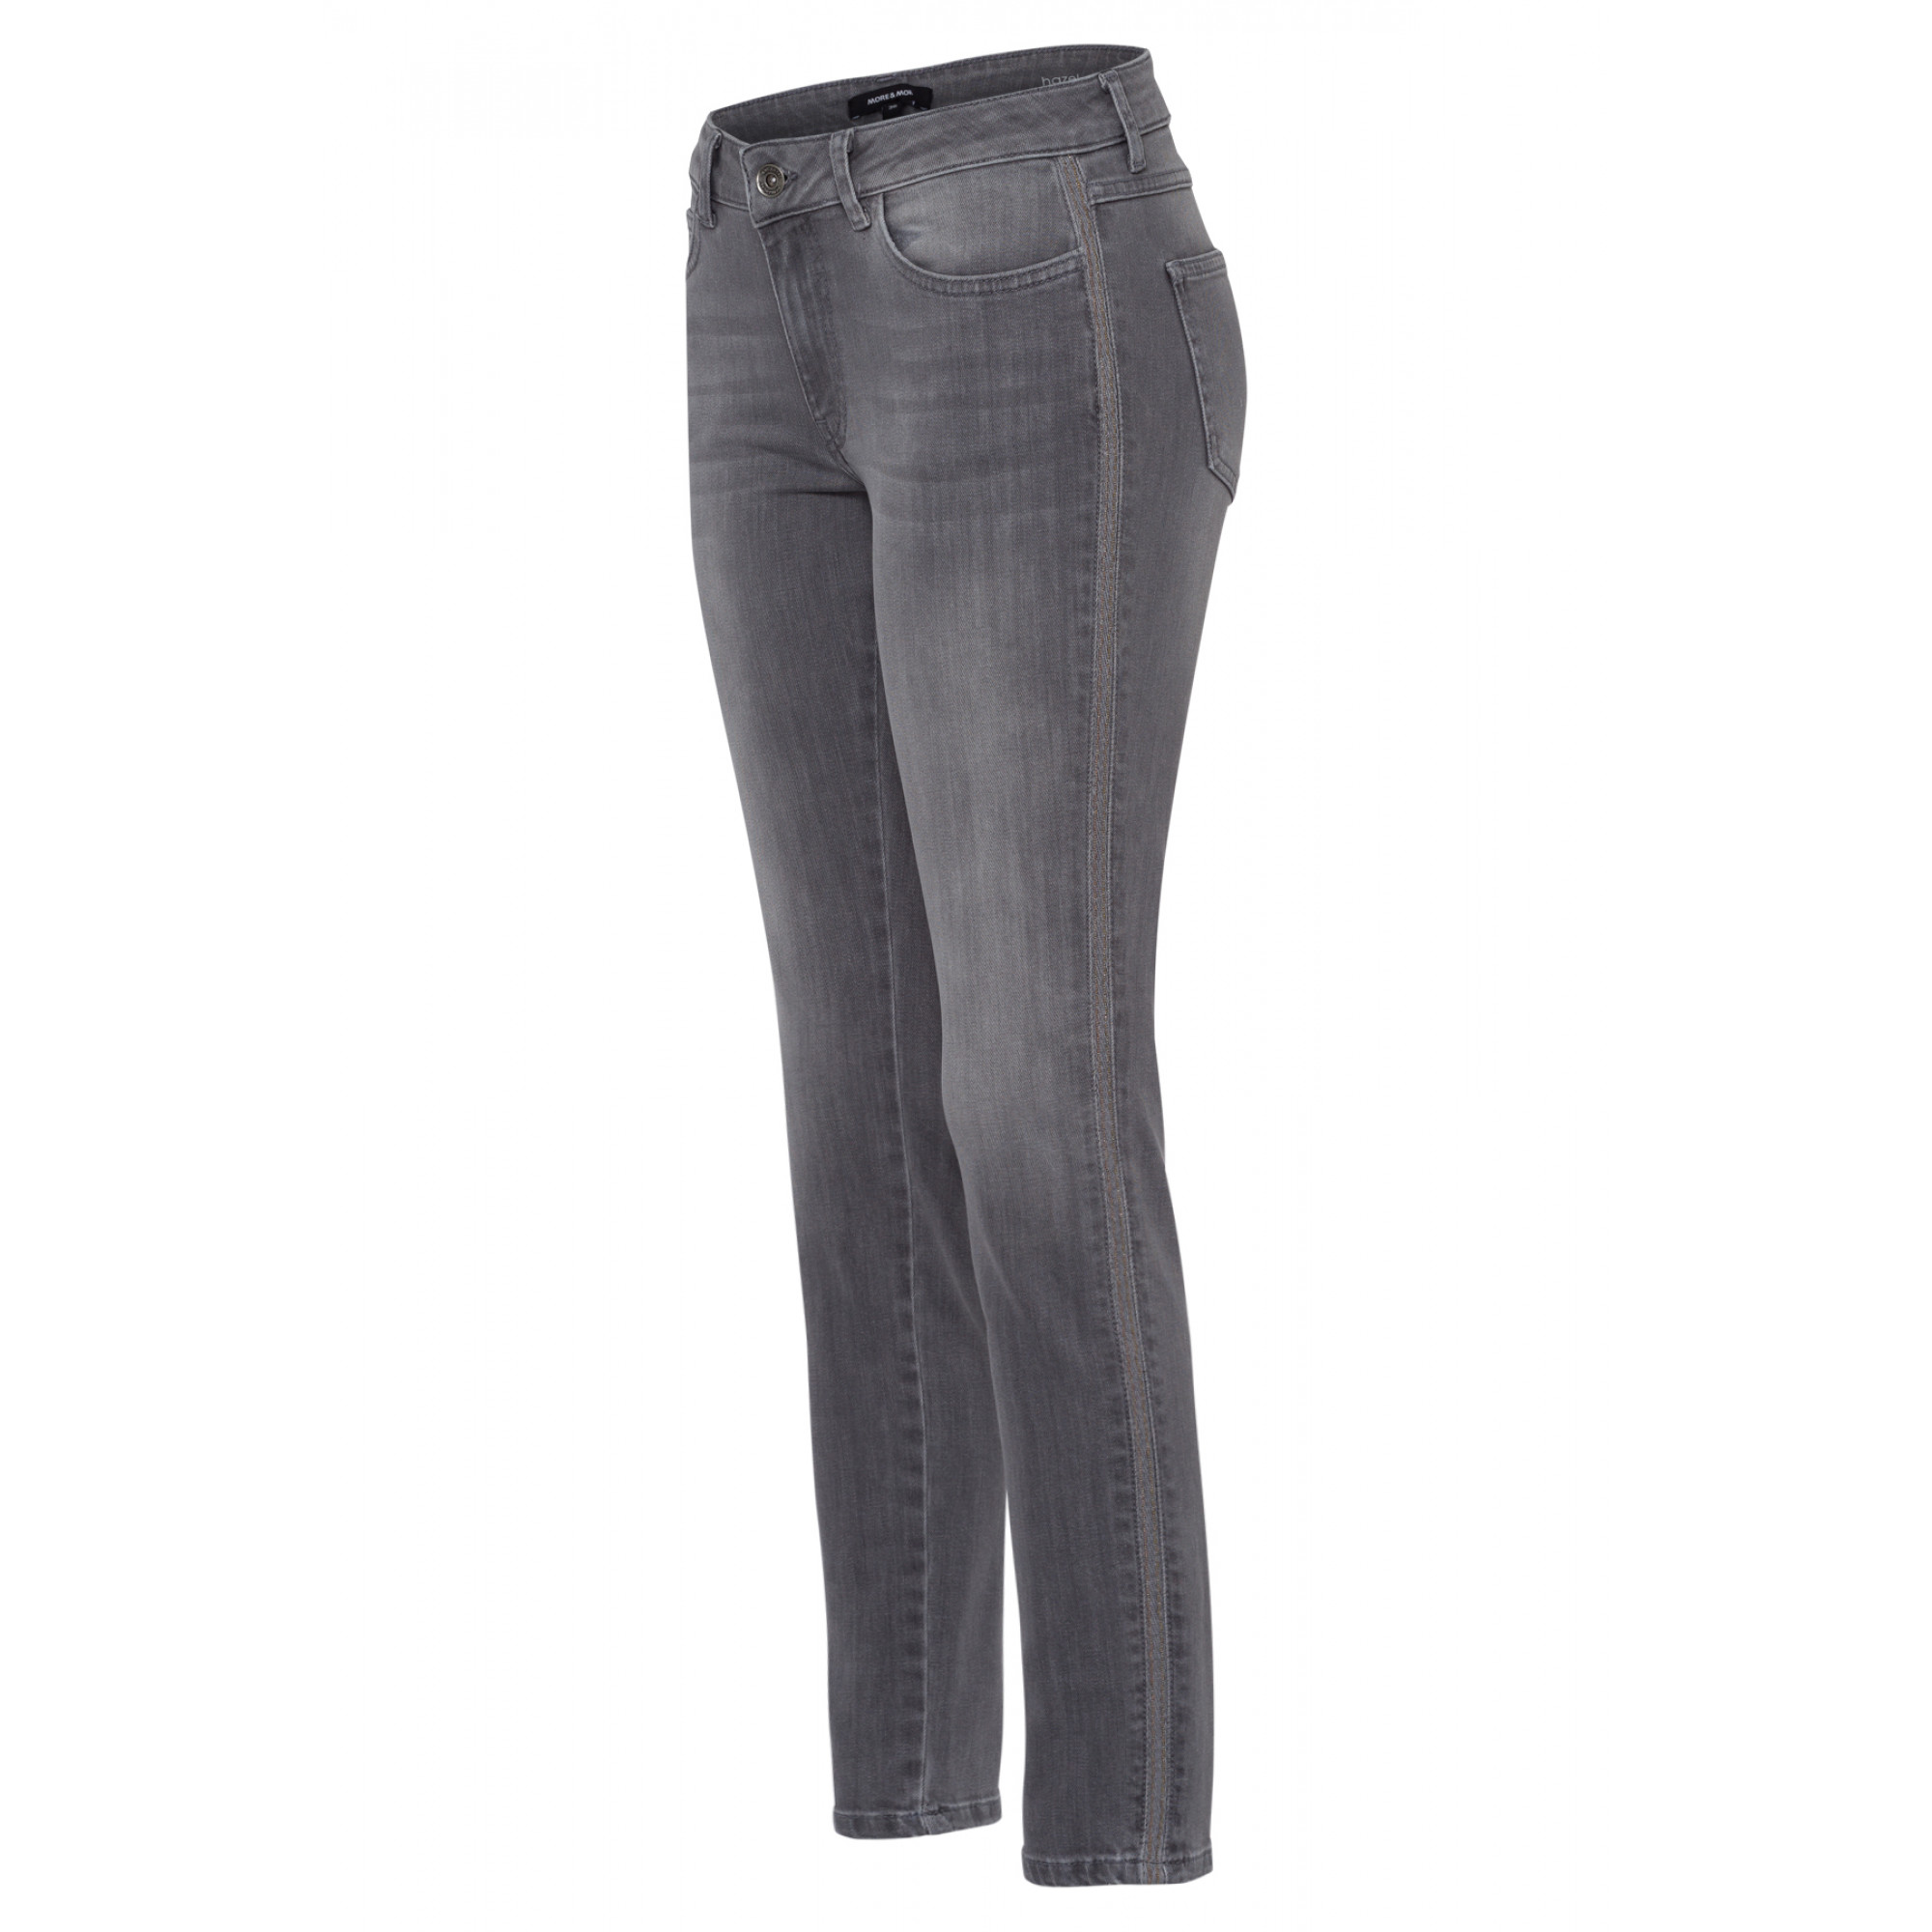 Five Pocket Jeans, grau, Hazel 91824502-0967 1